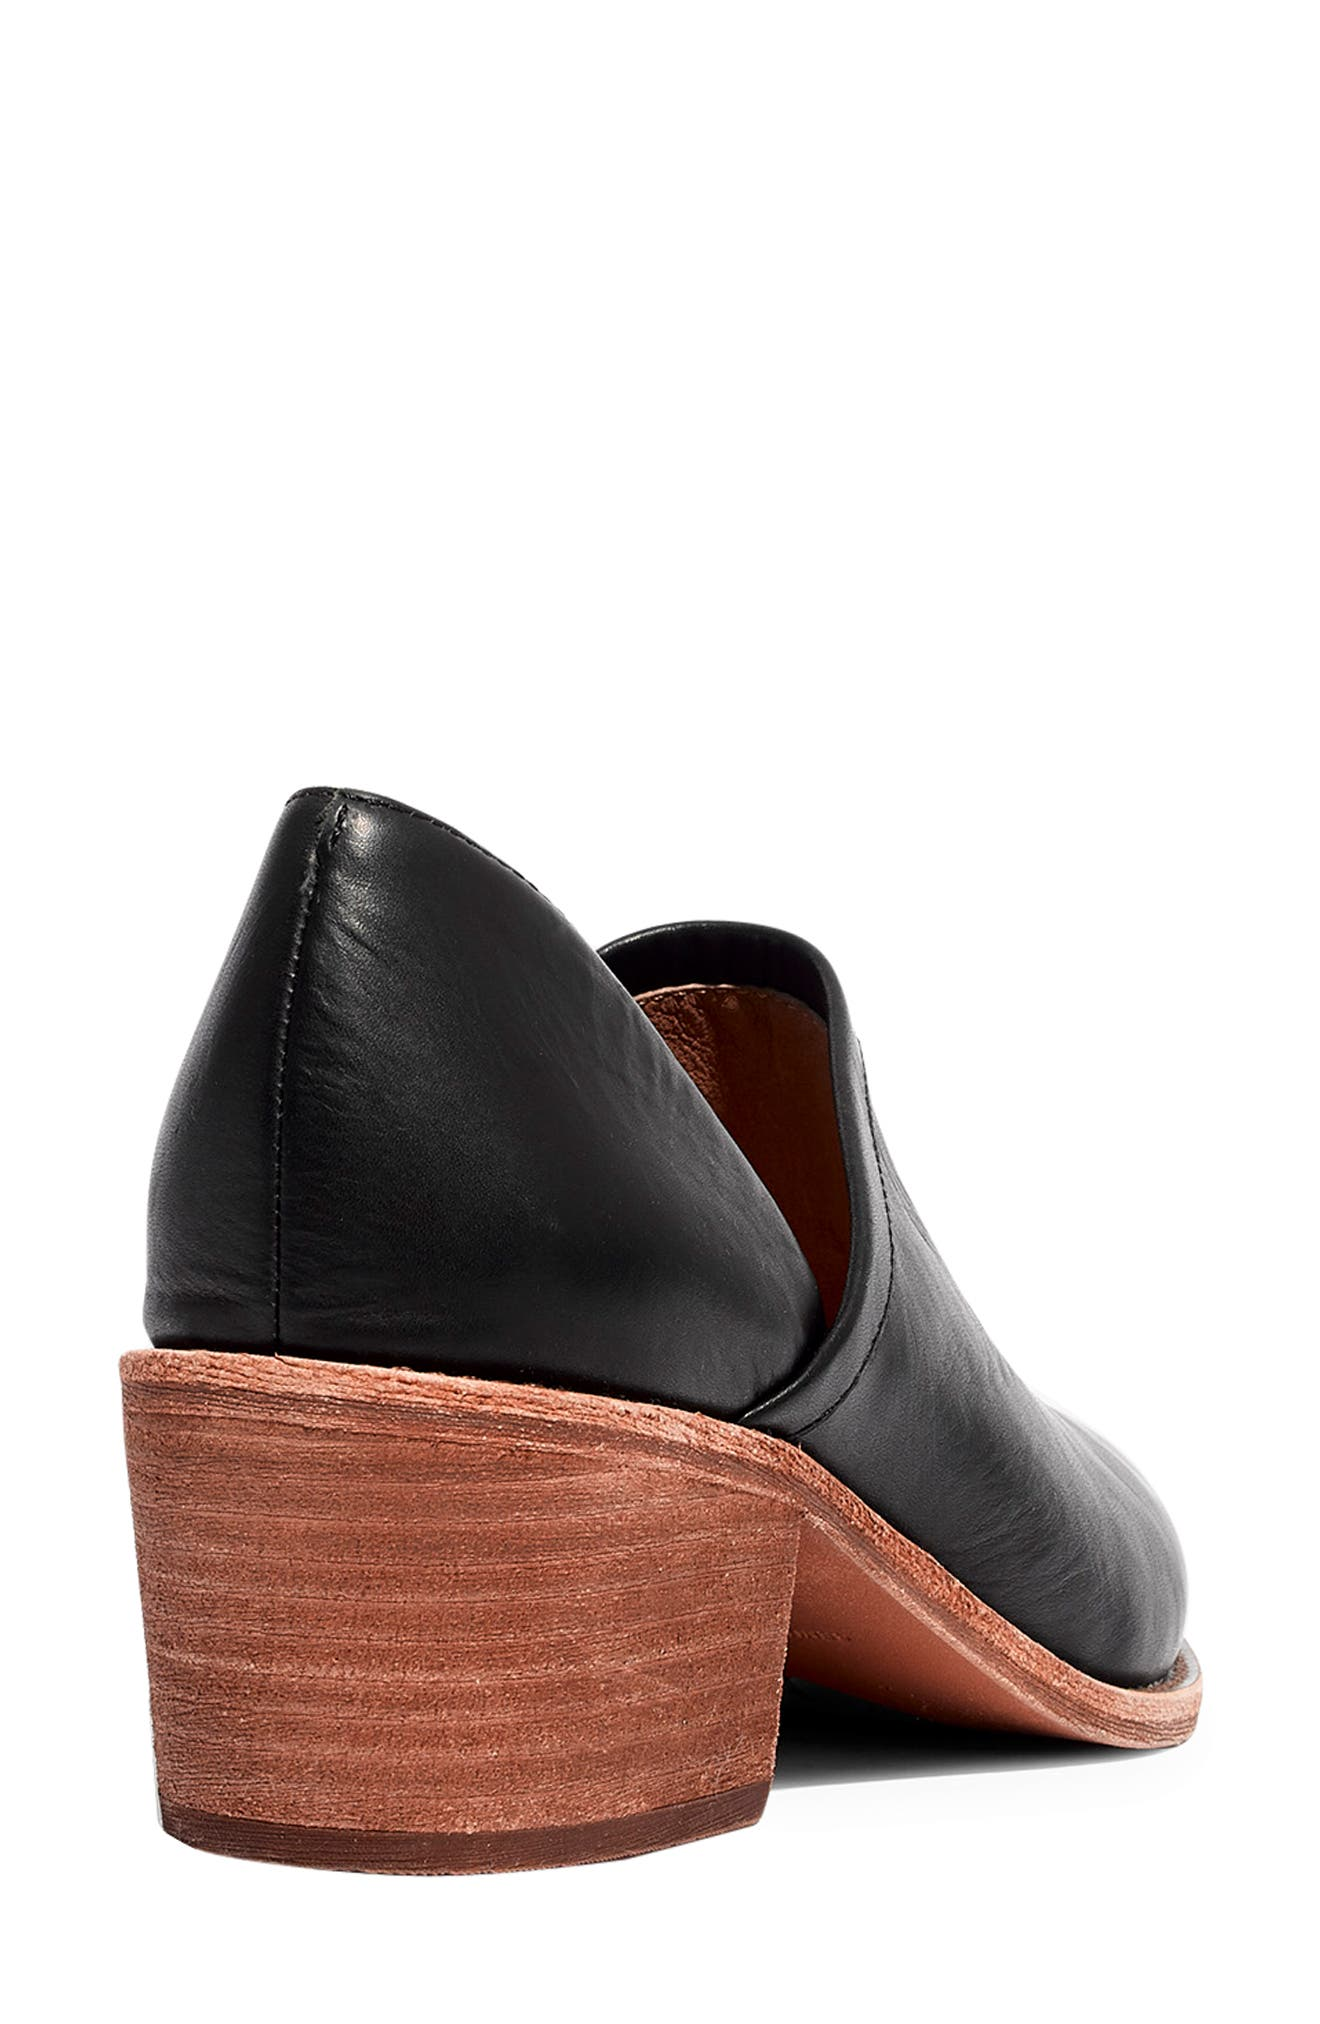 The Brady Block Heel Bootie,                             Alternate thumbnail 10, color,                             TRUE BLACK LEATHER